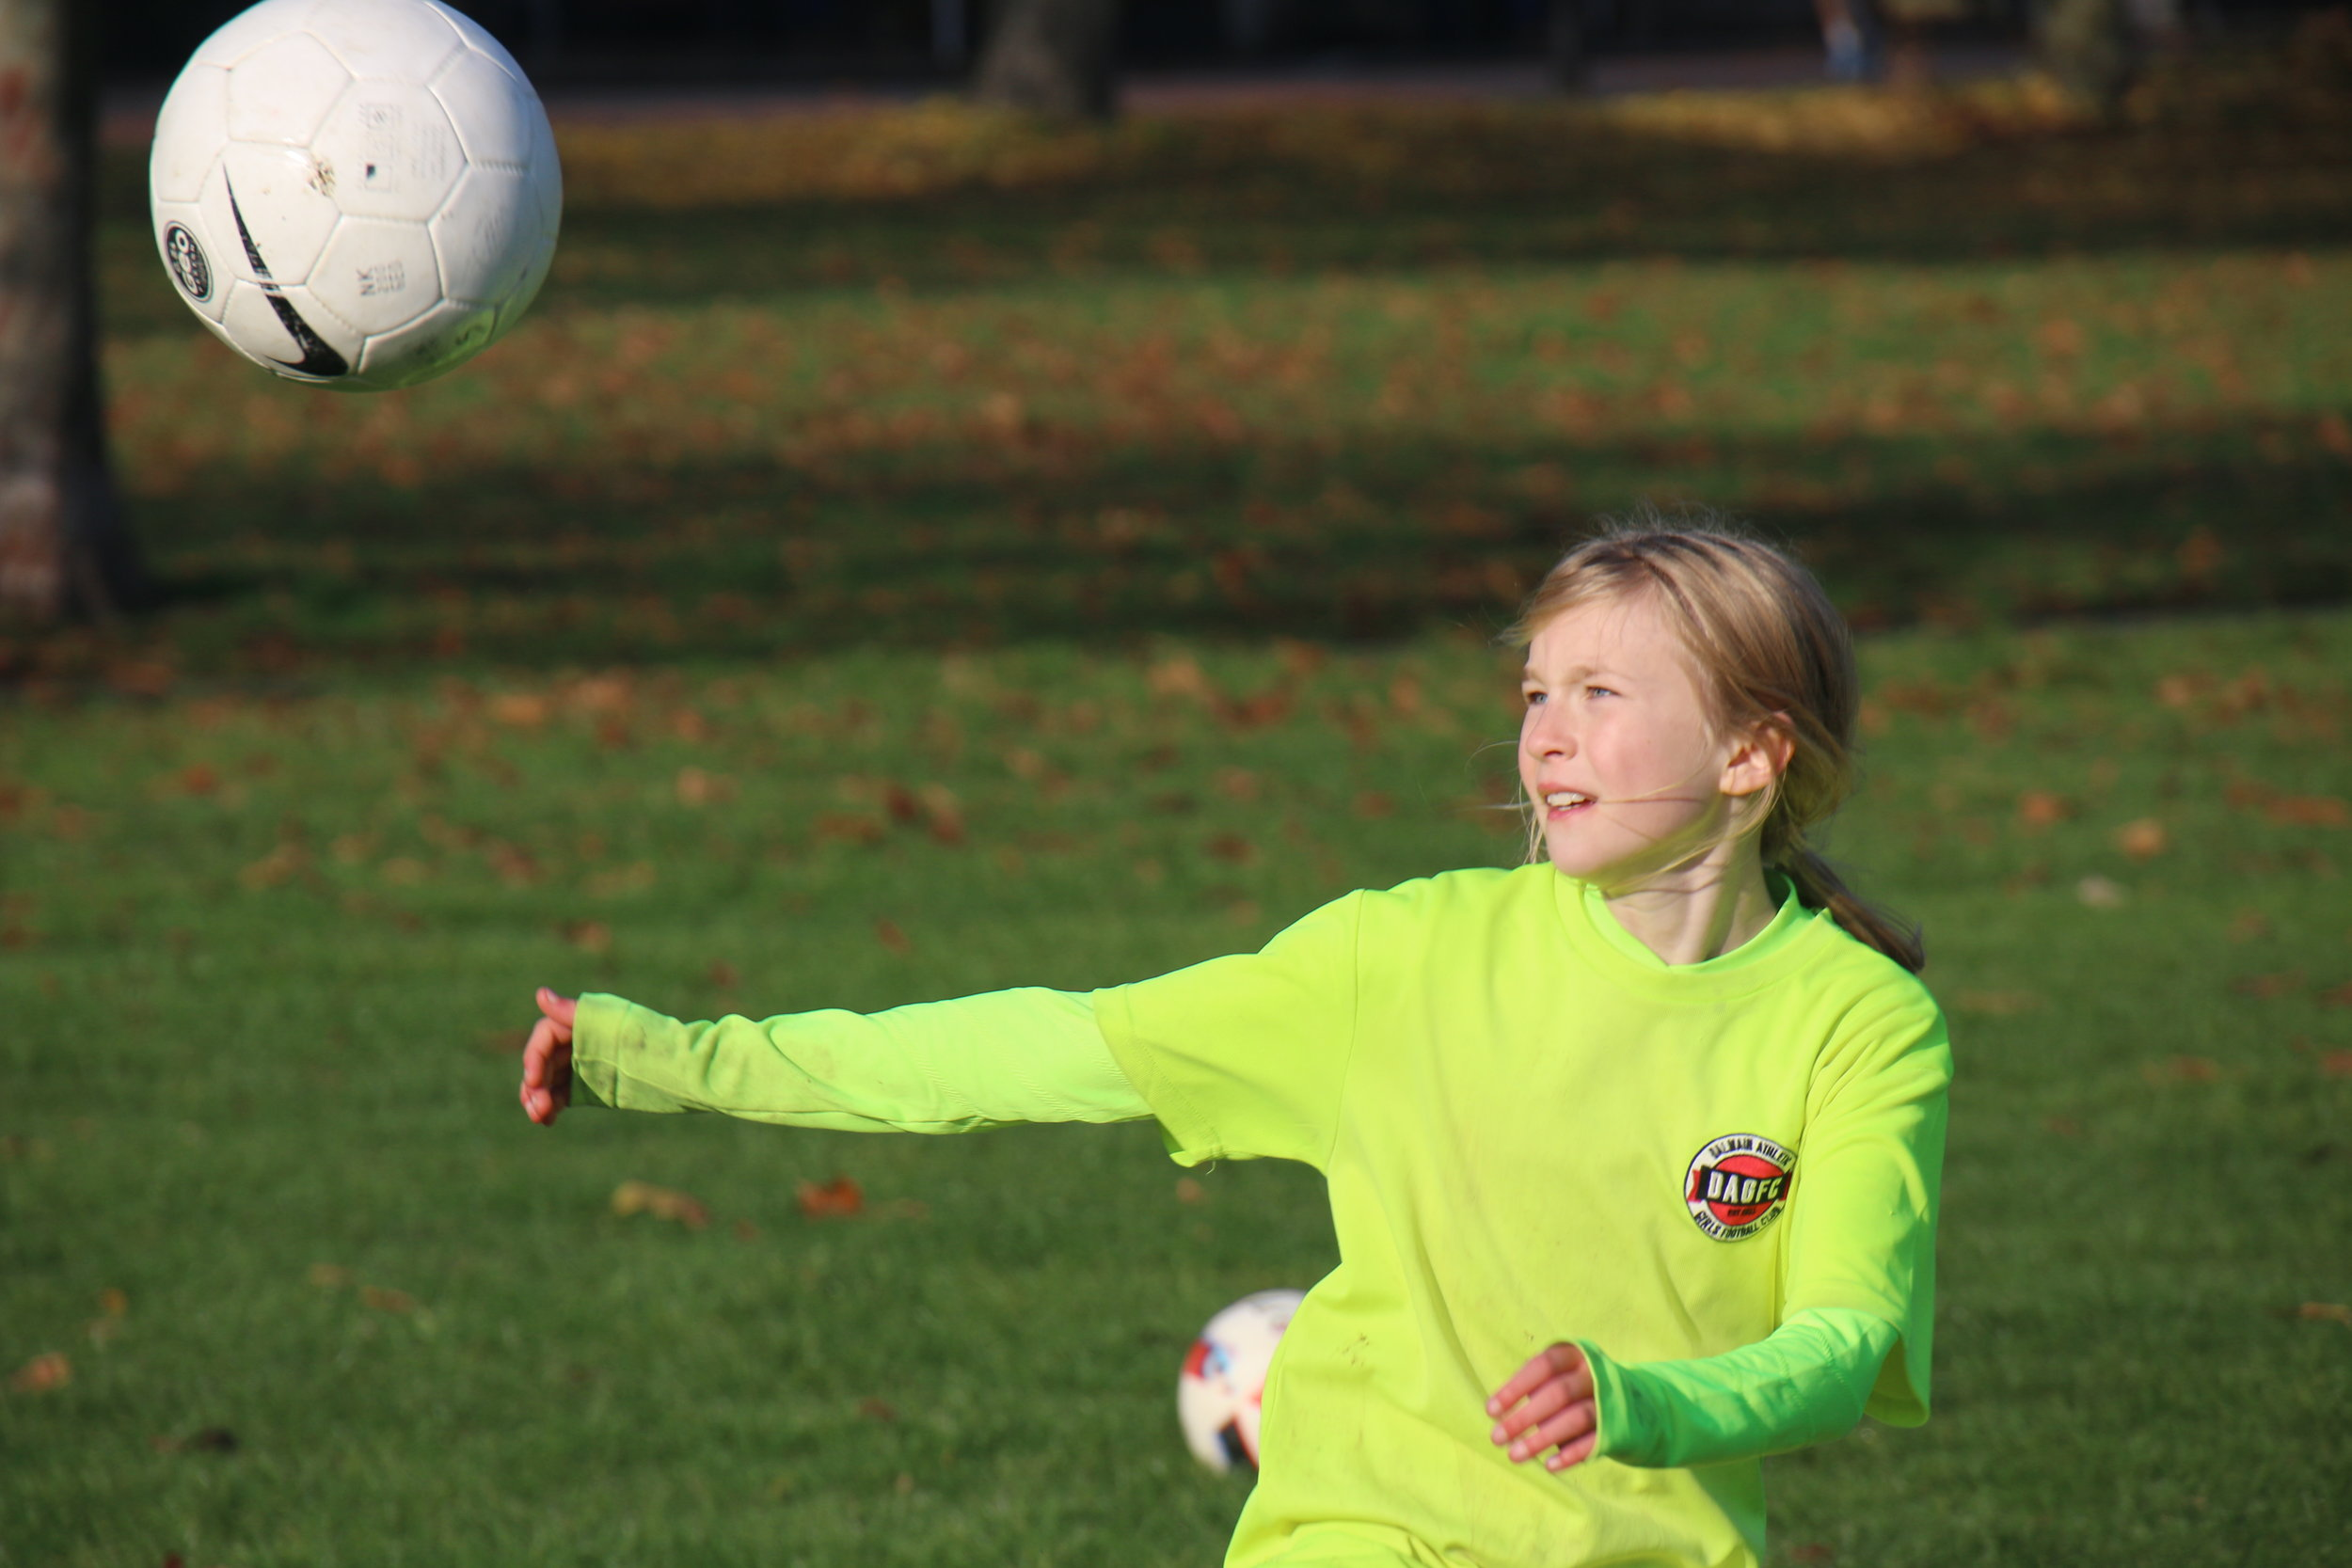 Our methodology and curriculum aims to level the playing field and fight inequality in sport